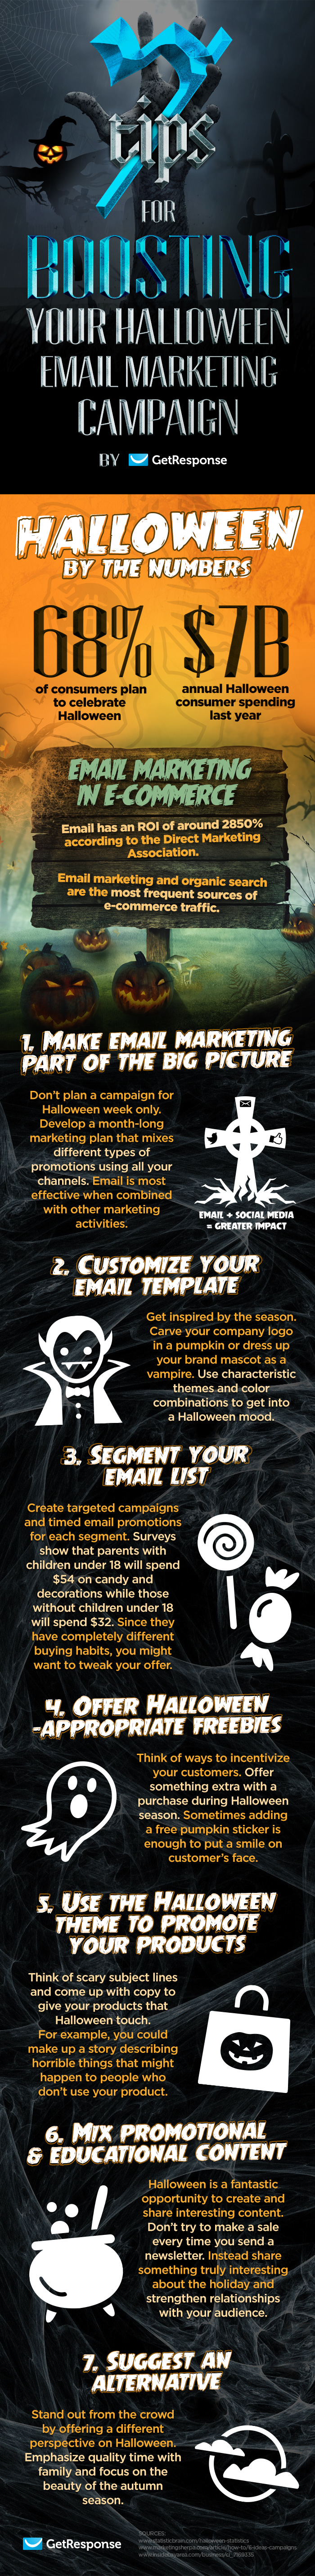 Tips For Booosting Your Halloween Email Marketing Campaign